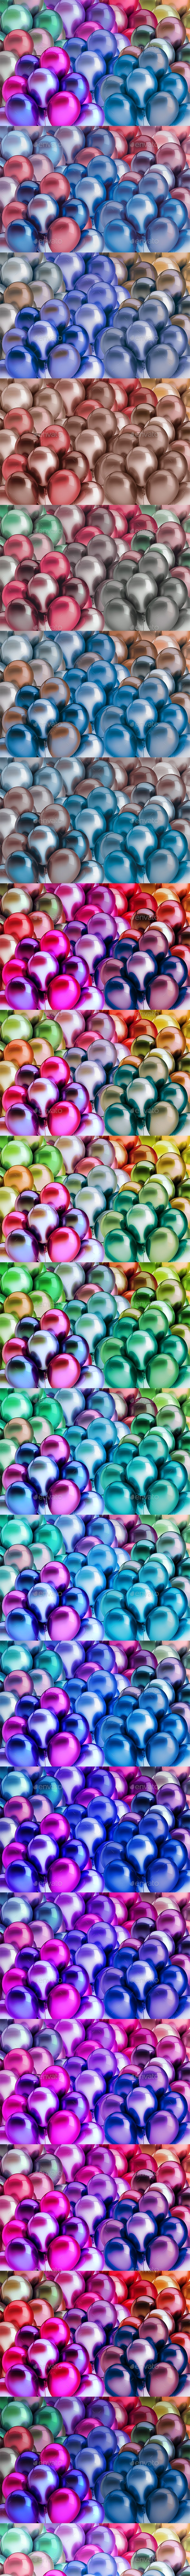 Background Colorful Balloons - 3D Backgrounds